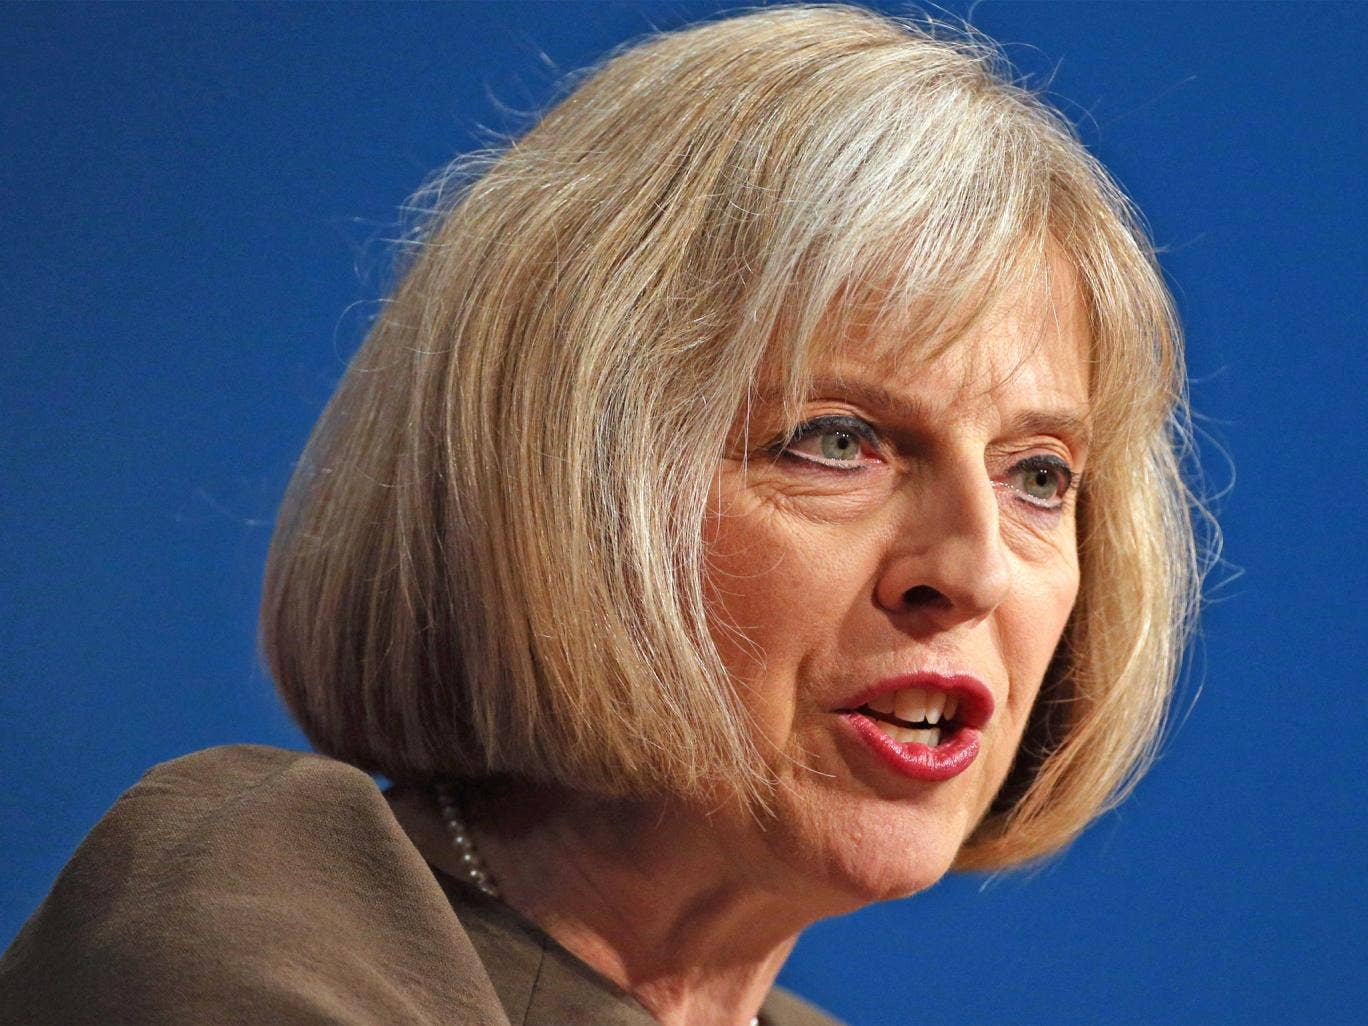 Theresa May is said to be veering further to the right in a bid to win more support